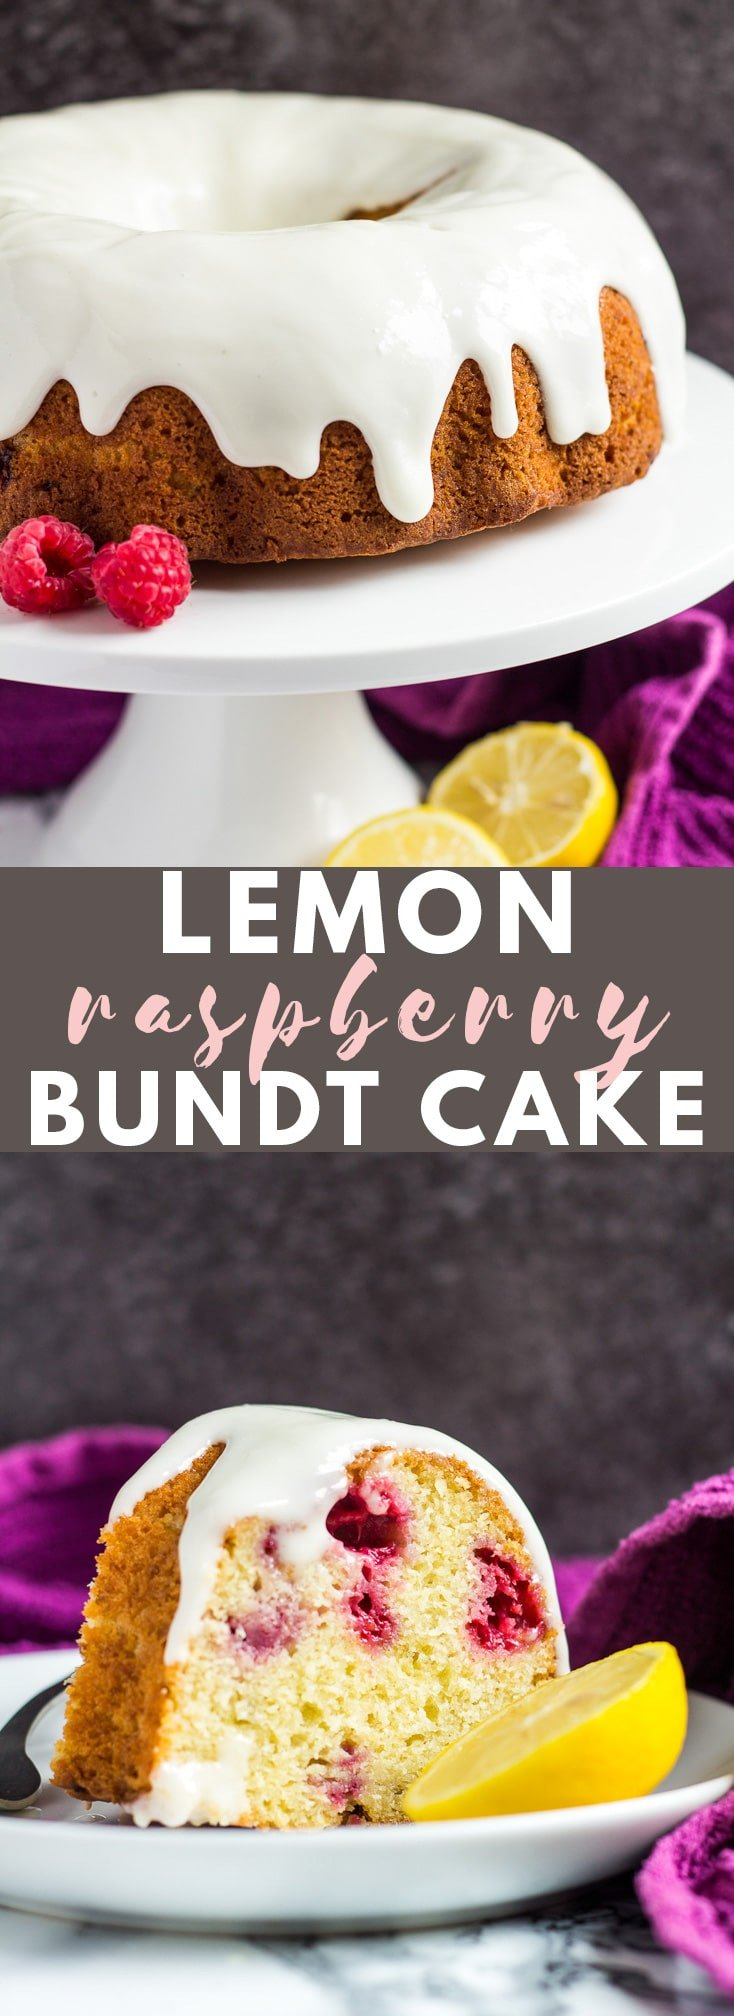 Lemon Raspberry Bundt Cake - Deliciously moist and fluffy lemon-infused bundt cake stuffed with fresh raspberries, and drizzled with a lemon cream cheese glaze!